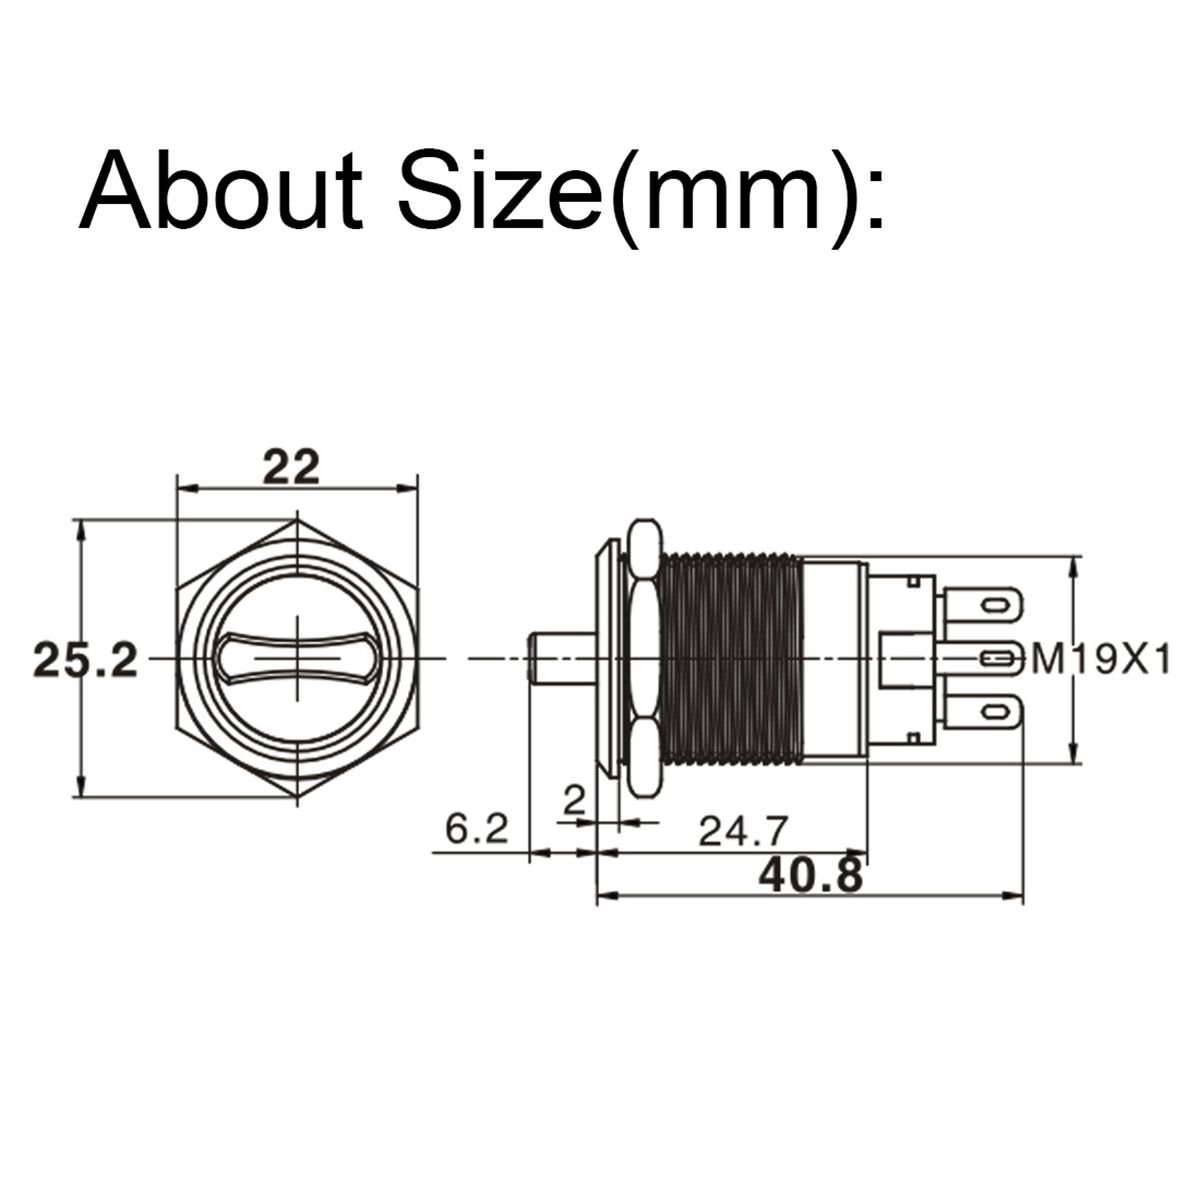 hight resolution of 19mm 3 position 12v waterproof stainless steel latching metal selector switch